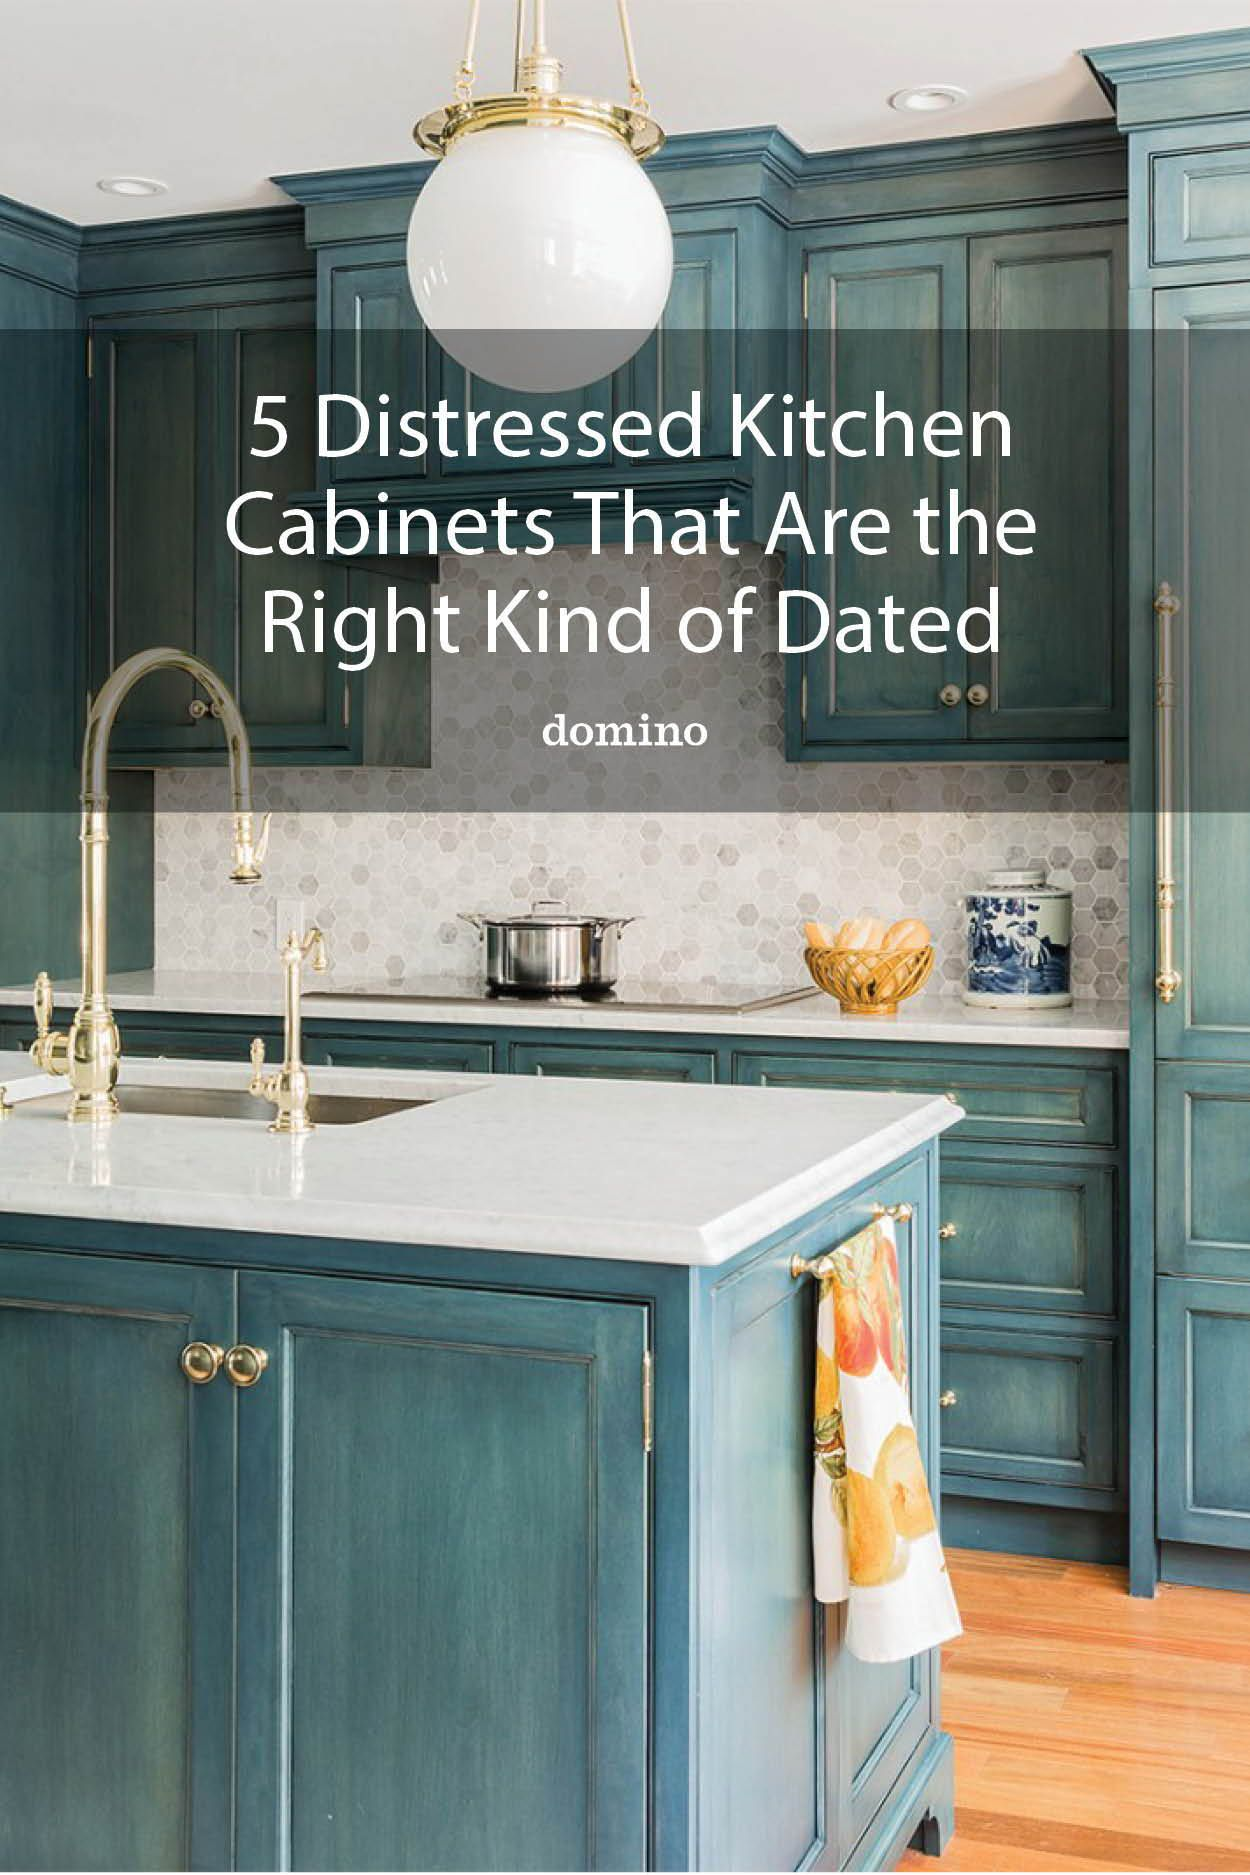 5 Distressed Kitchen Cabinets That Really Bring The Charm In 2020 Distressed Kitchen Distressed Kitchen Cabinets Kitchen Cabinets